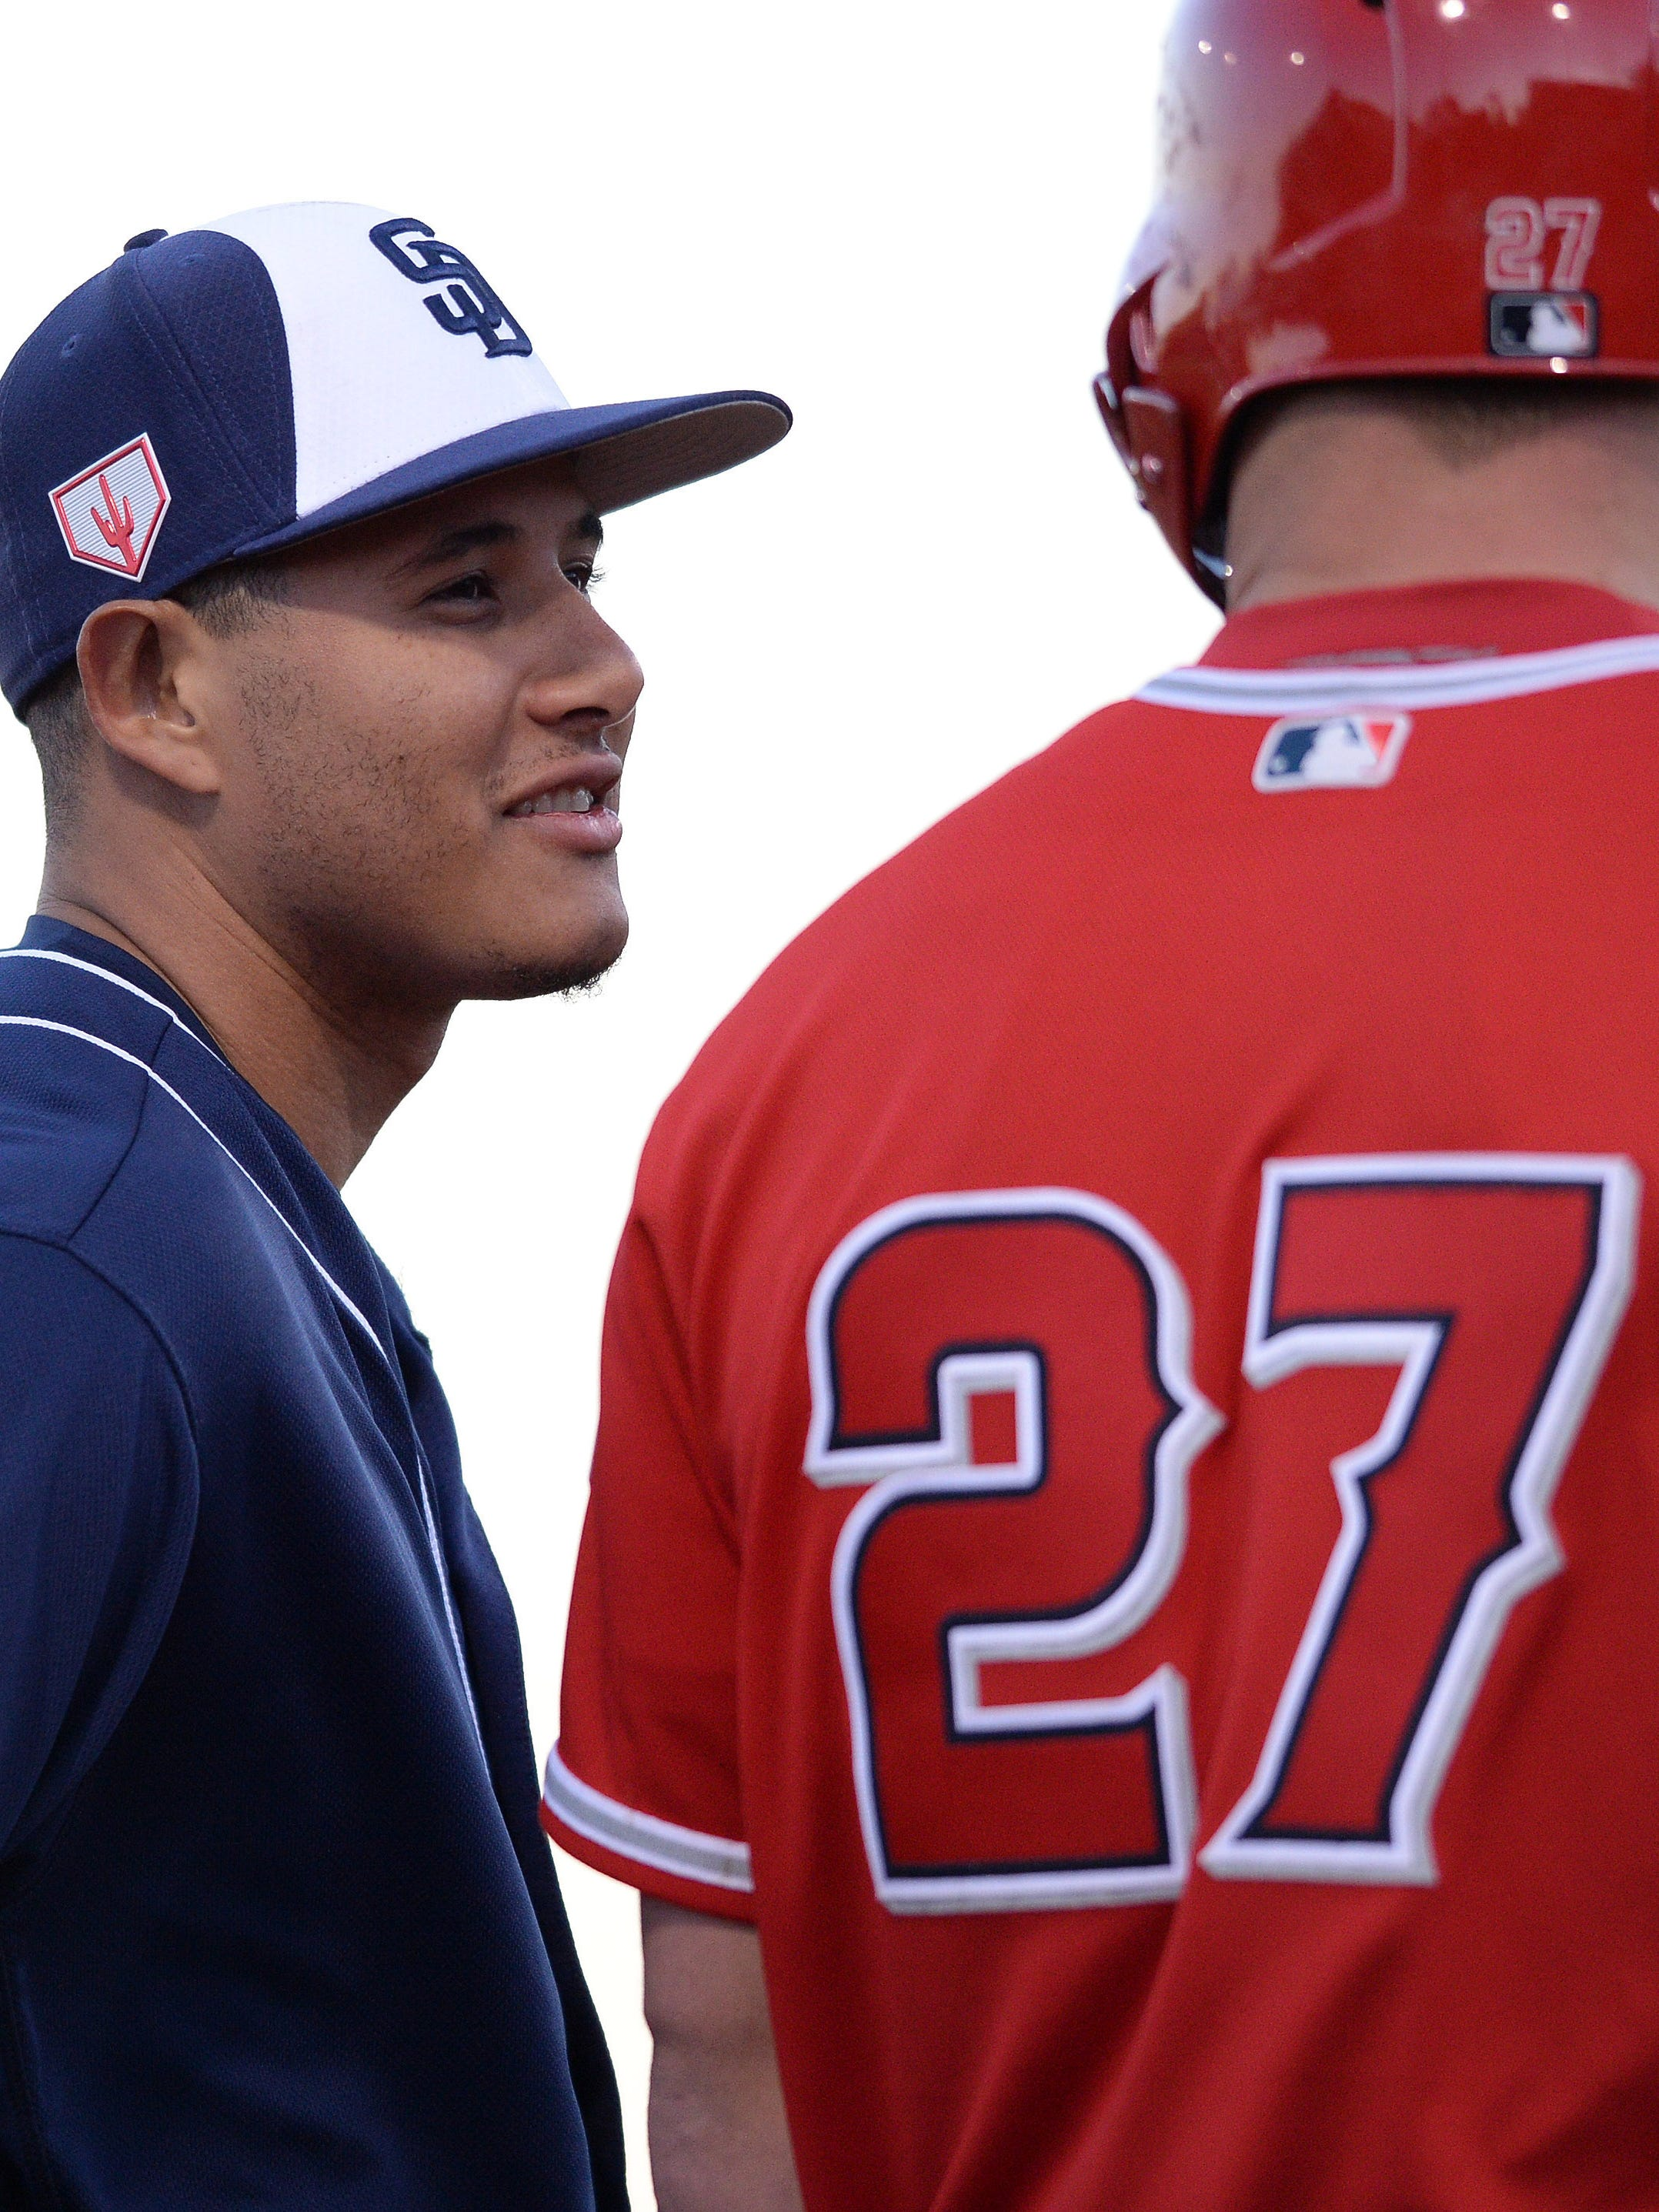 Both Manny Macahdo and Mike Trout will be among the highest-paid players for the next several seasons.